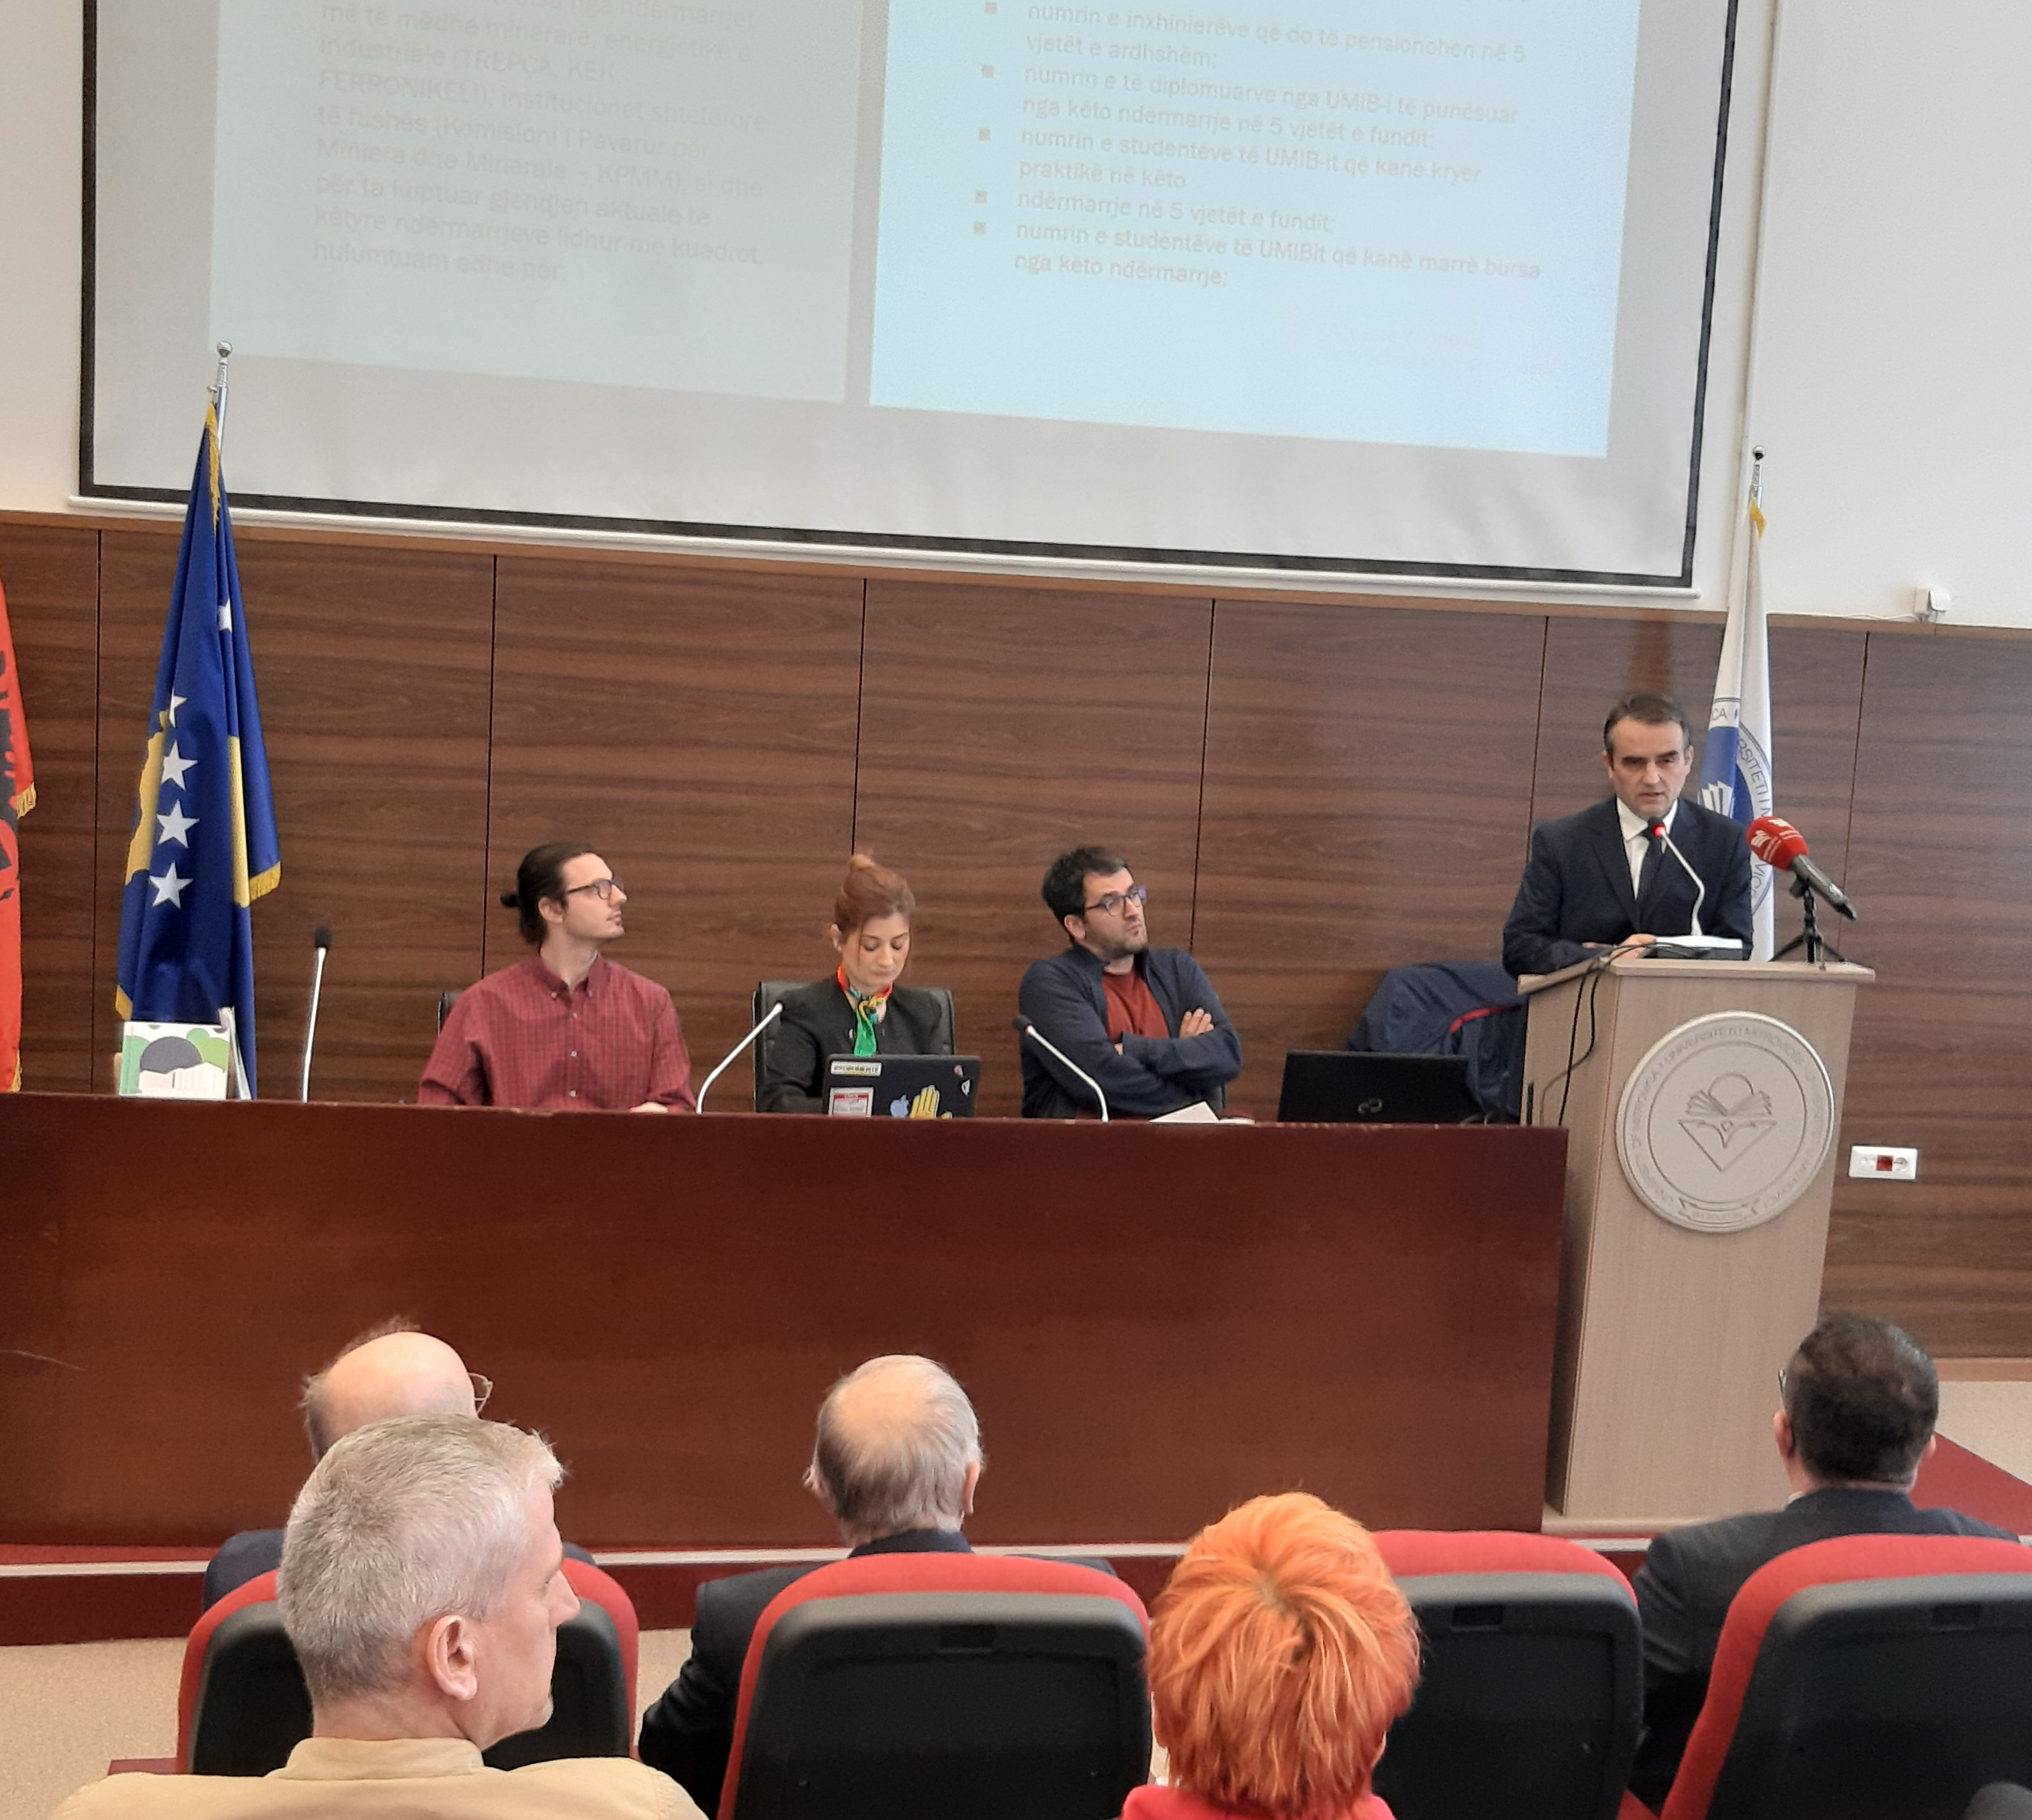 The research on the Faculty of Geosciences was presented